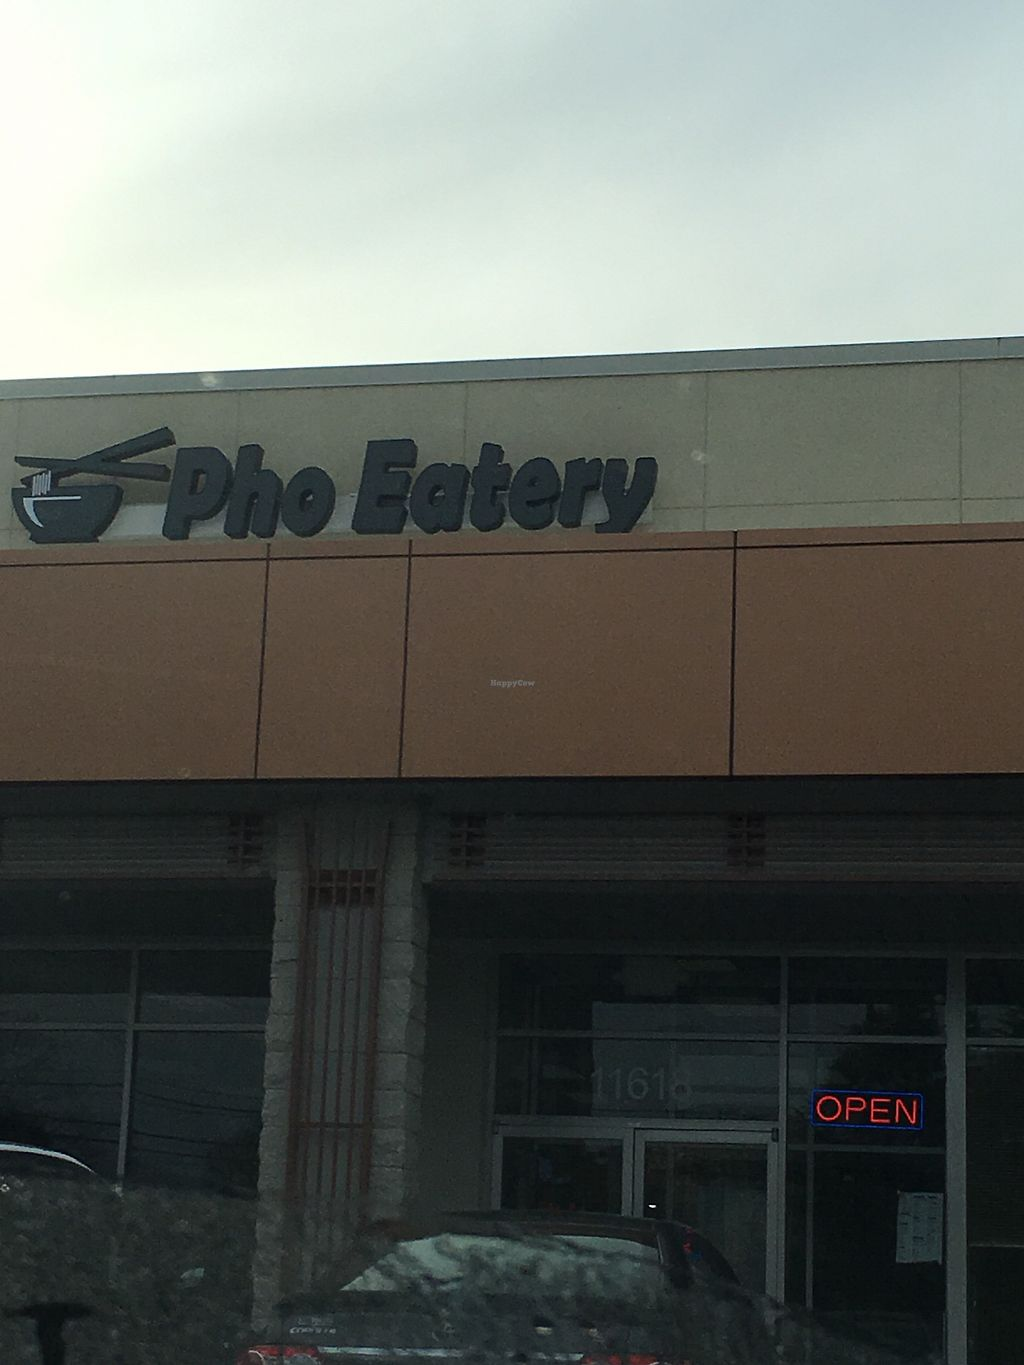 """Photo of Pho Eatery  by <a href=""""/members/profile/nardanddee"""">nardanddee</a> <br/>Exterior <br/> January 17, 2018  - <a href='/contact/abuse/image/47905/347746'>Report</a>"""